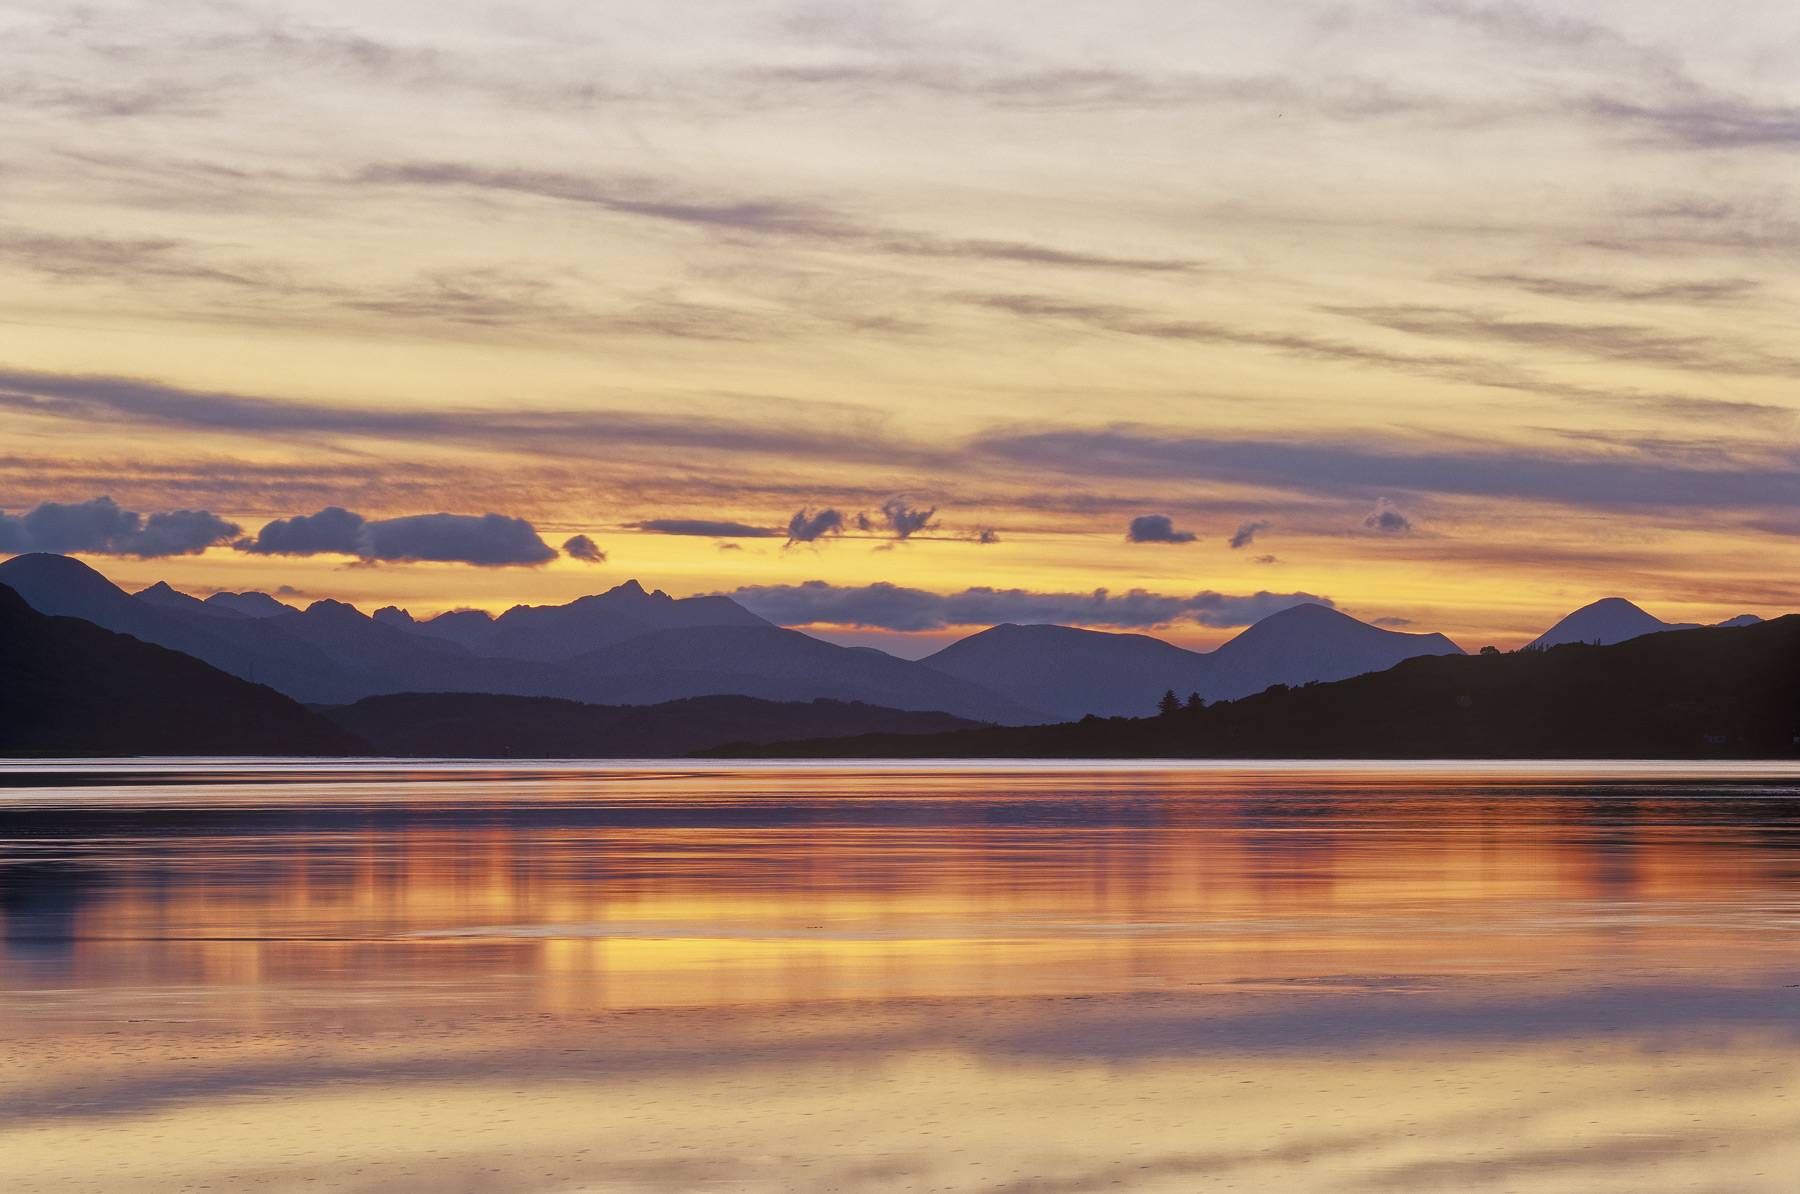 Sunset Cullin Ridge, Loch Duich, Highlands, Scotland, reflected, surface, purple, silhouetted, mountains, Cuillins, skyl, photo